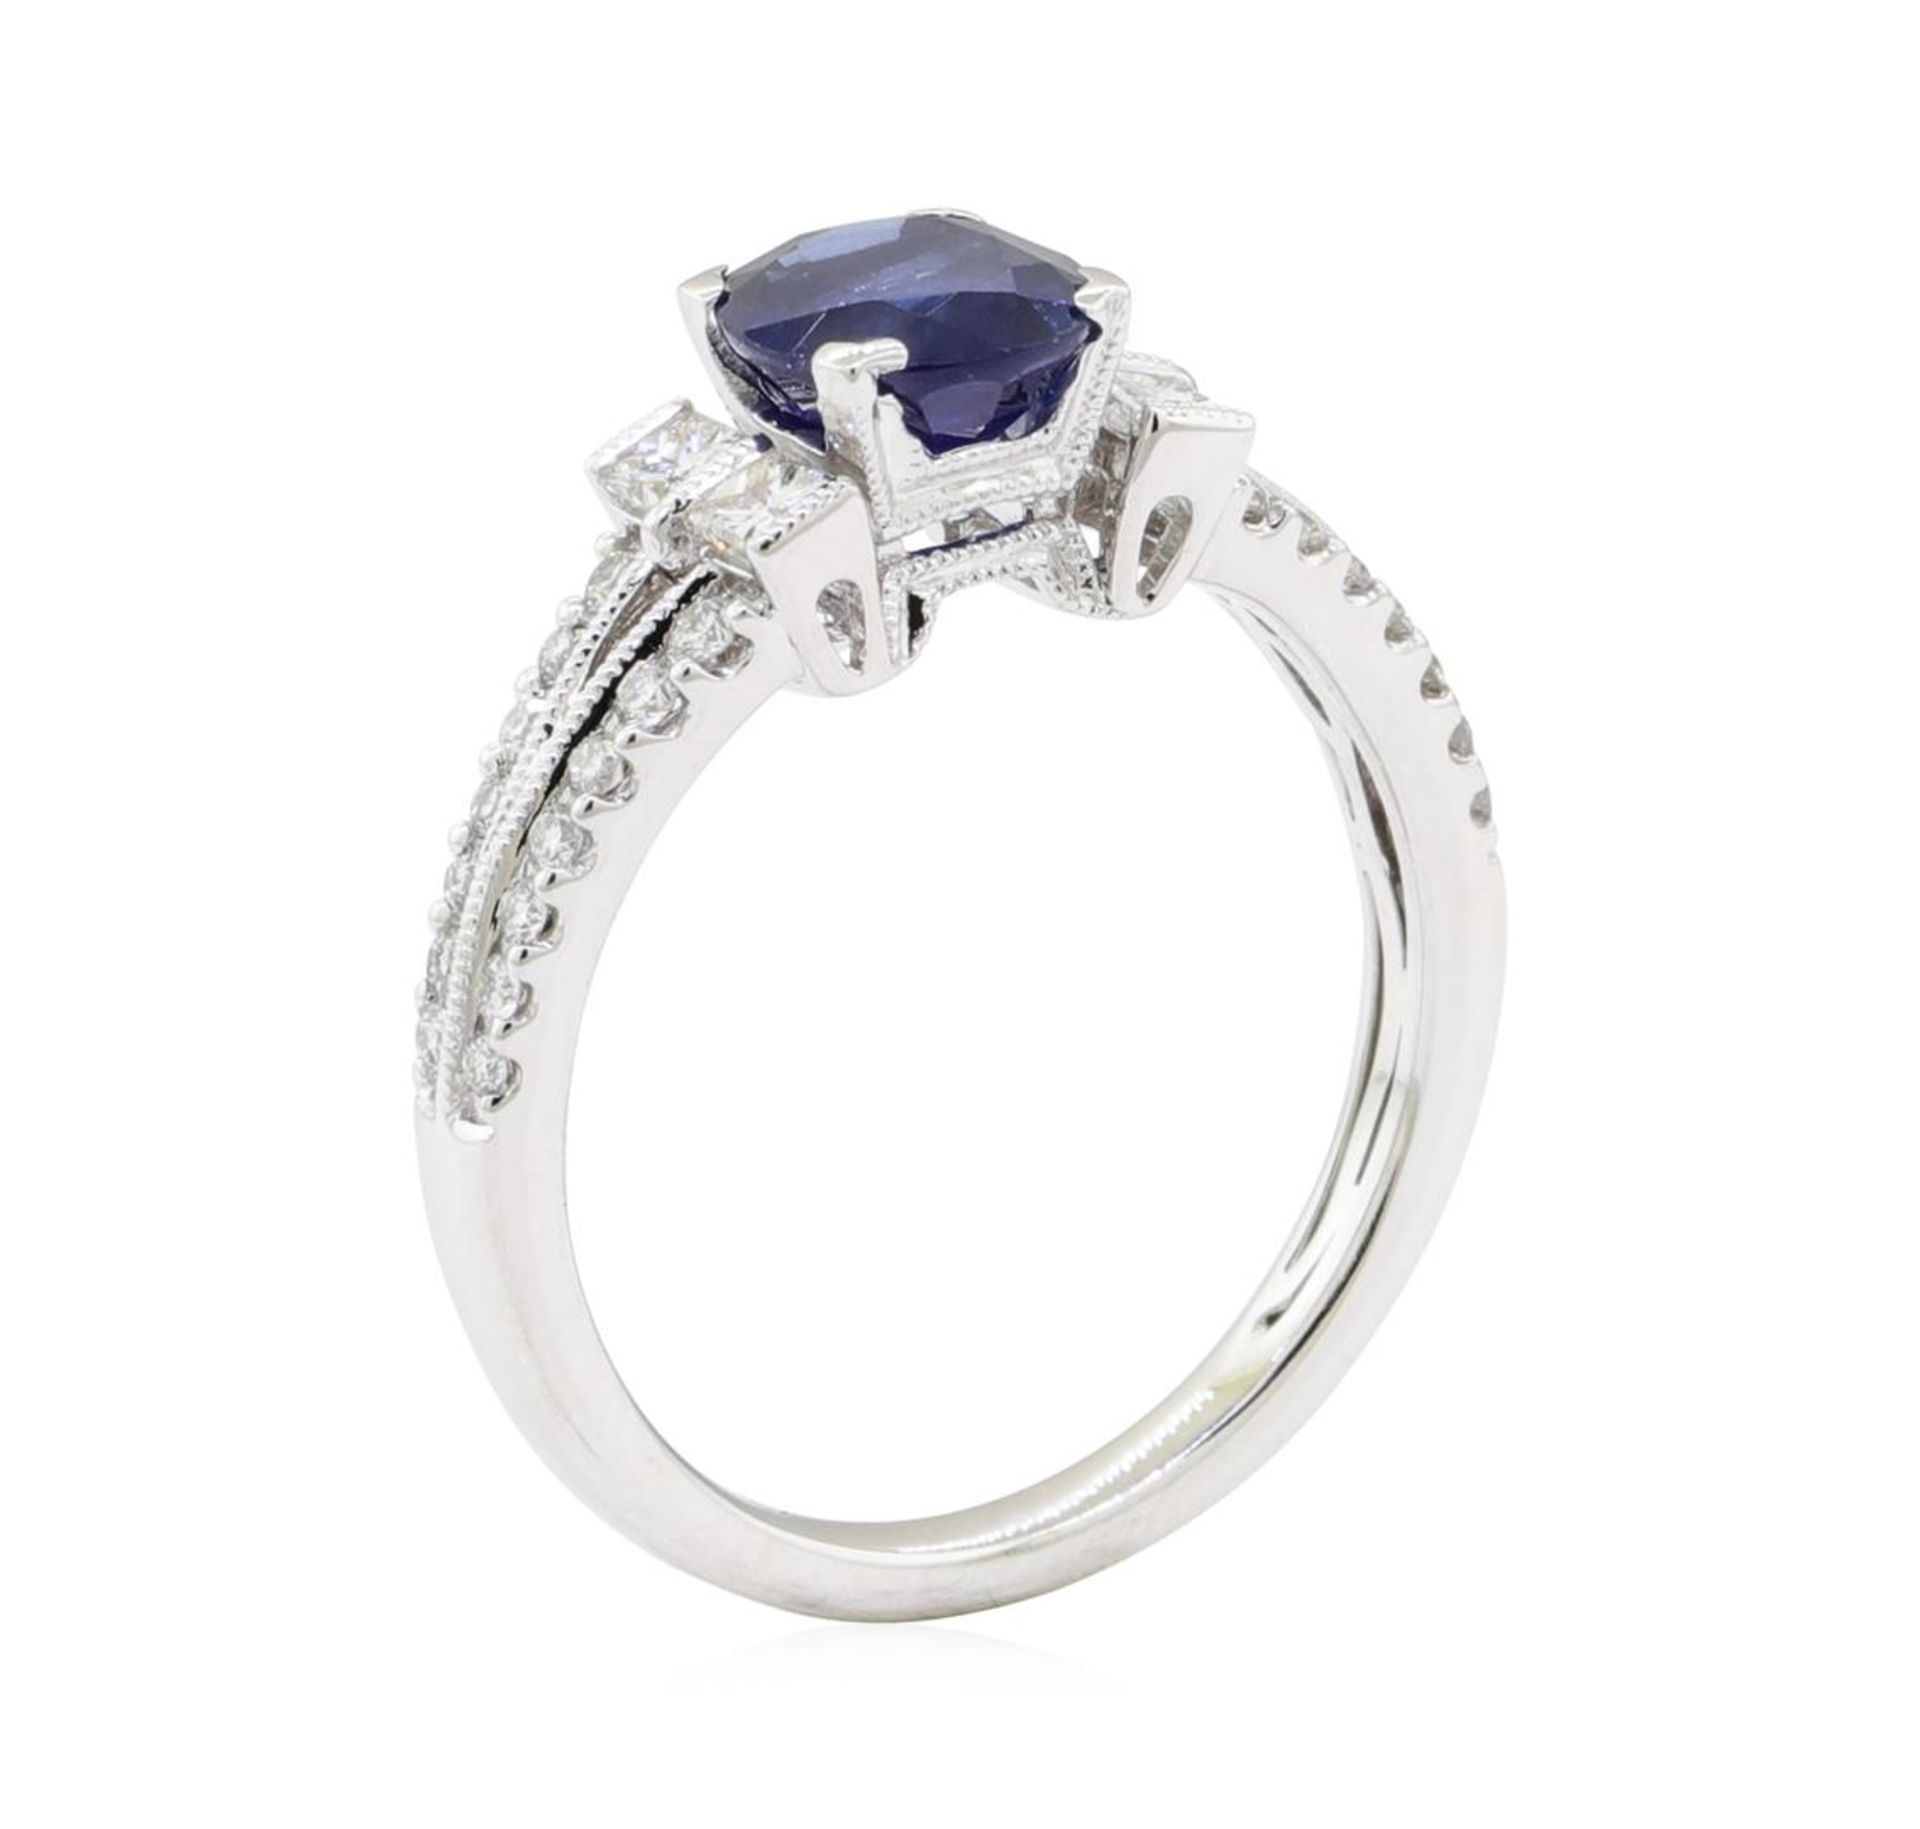 1.98 ctw Sapphire and Diamond Ring - 18KT White Gold - Image 4 of 5